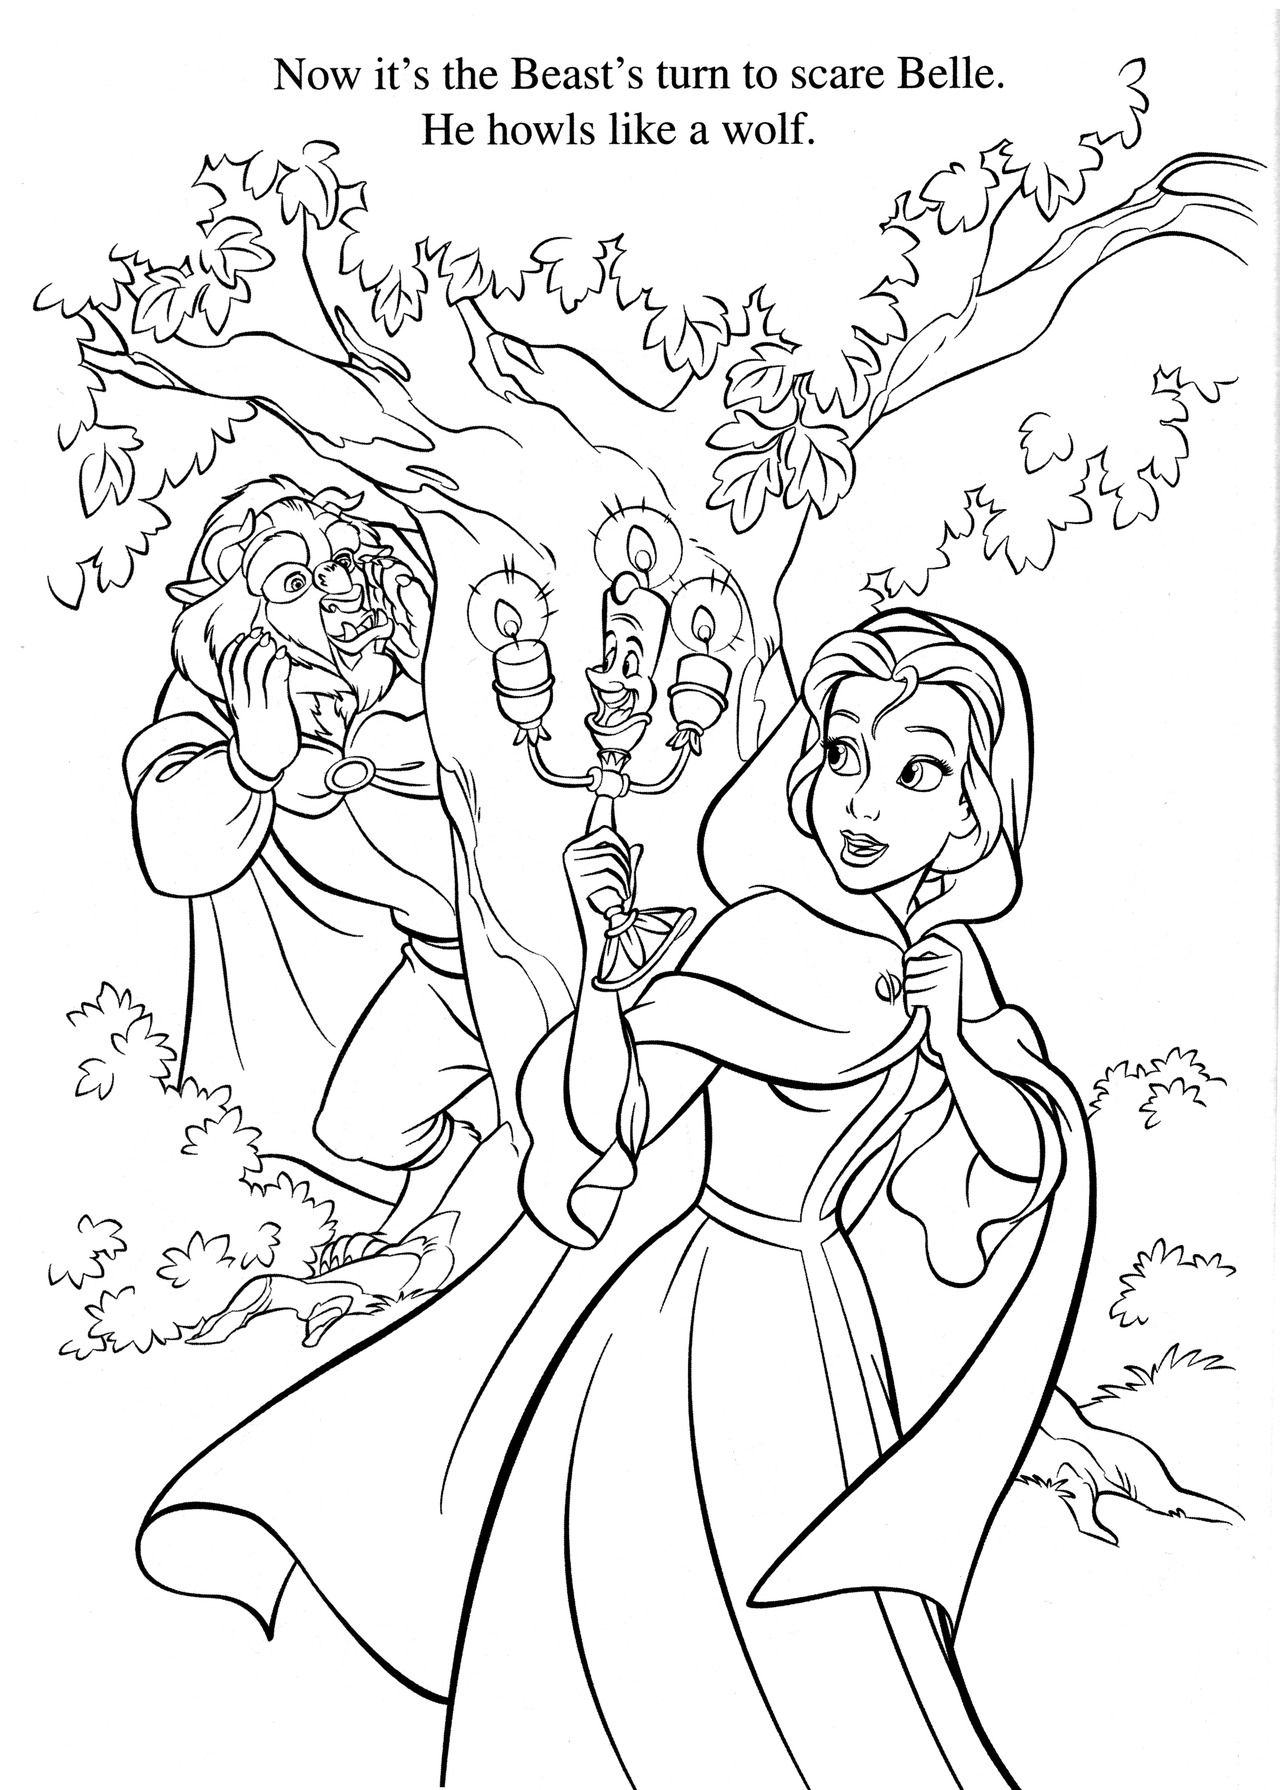 Disney coloring pages beauty and the beast - Disney Coloring Page Belle And The Beast